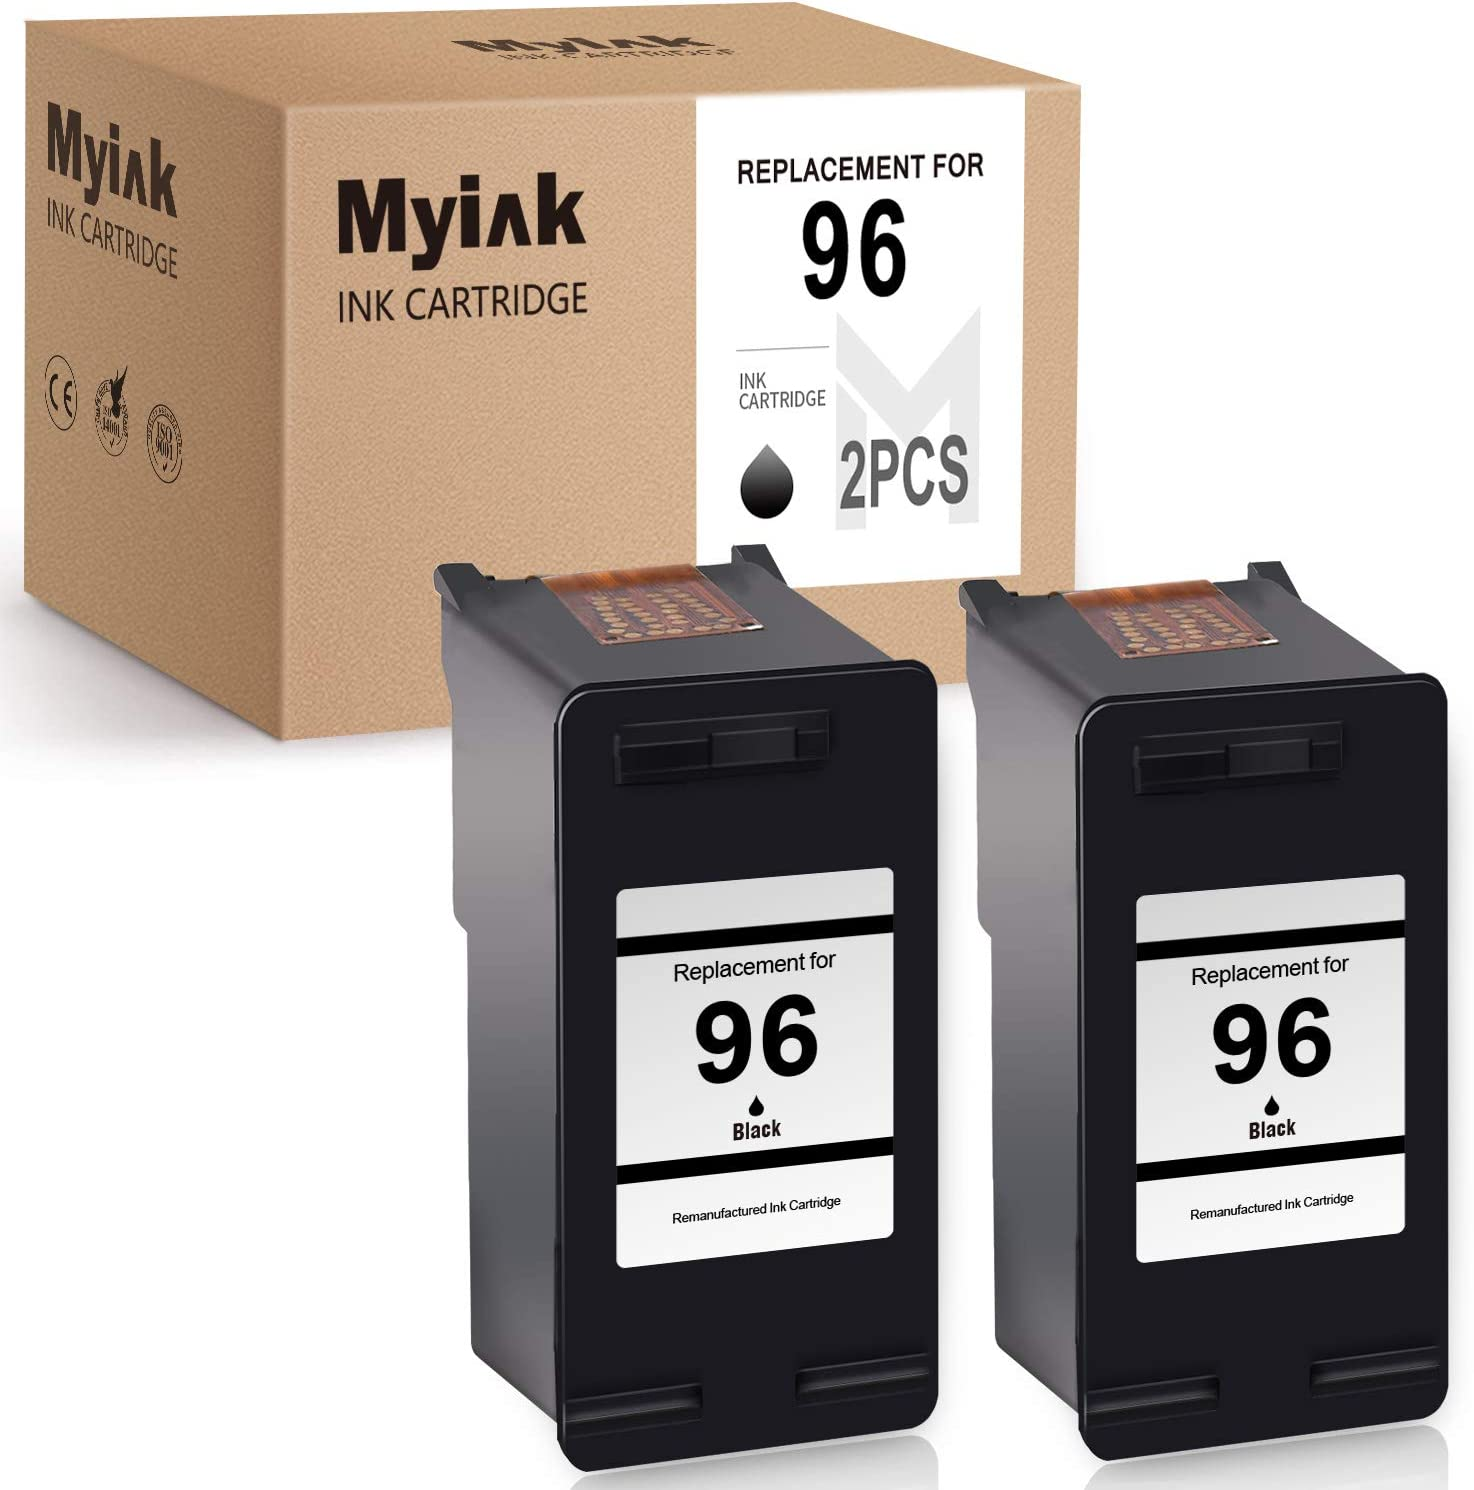 MYIK Remanufactured Ink Cartridge Replacement for HP 96 C8767WN to use with DeskJet 6940 6520 6830 5740 6988 6540 6980 OfficeJet 5745 7410 PhotoSmart 8150 8030 (Black, 2-Pack)